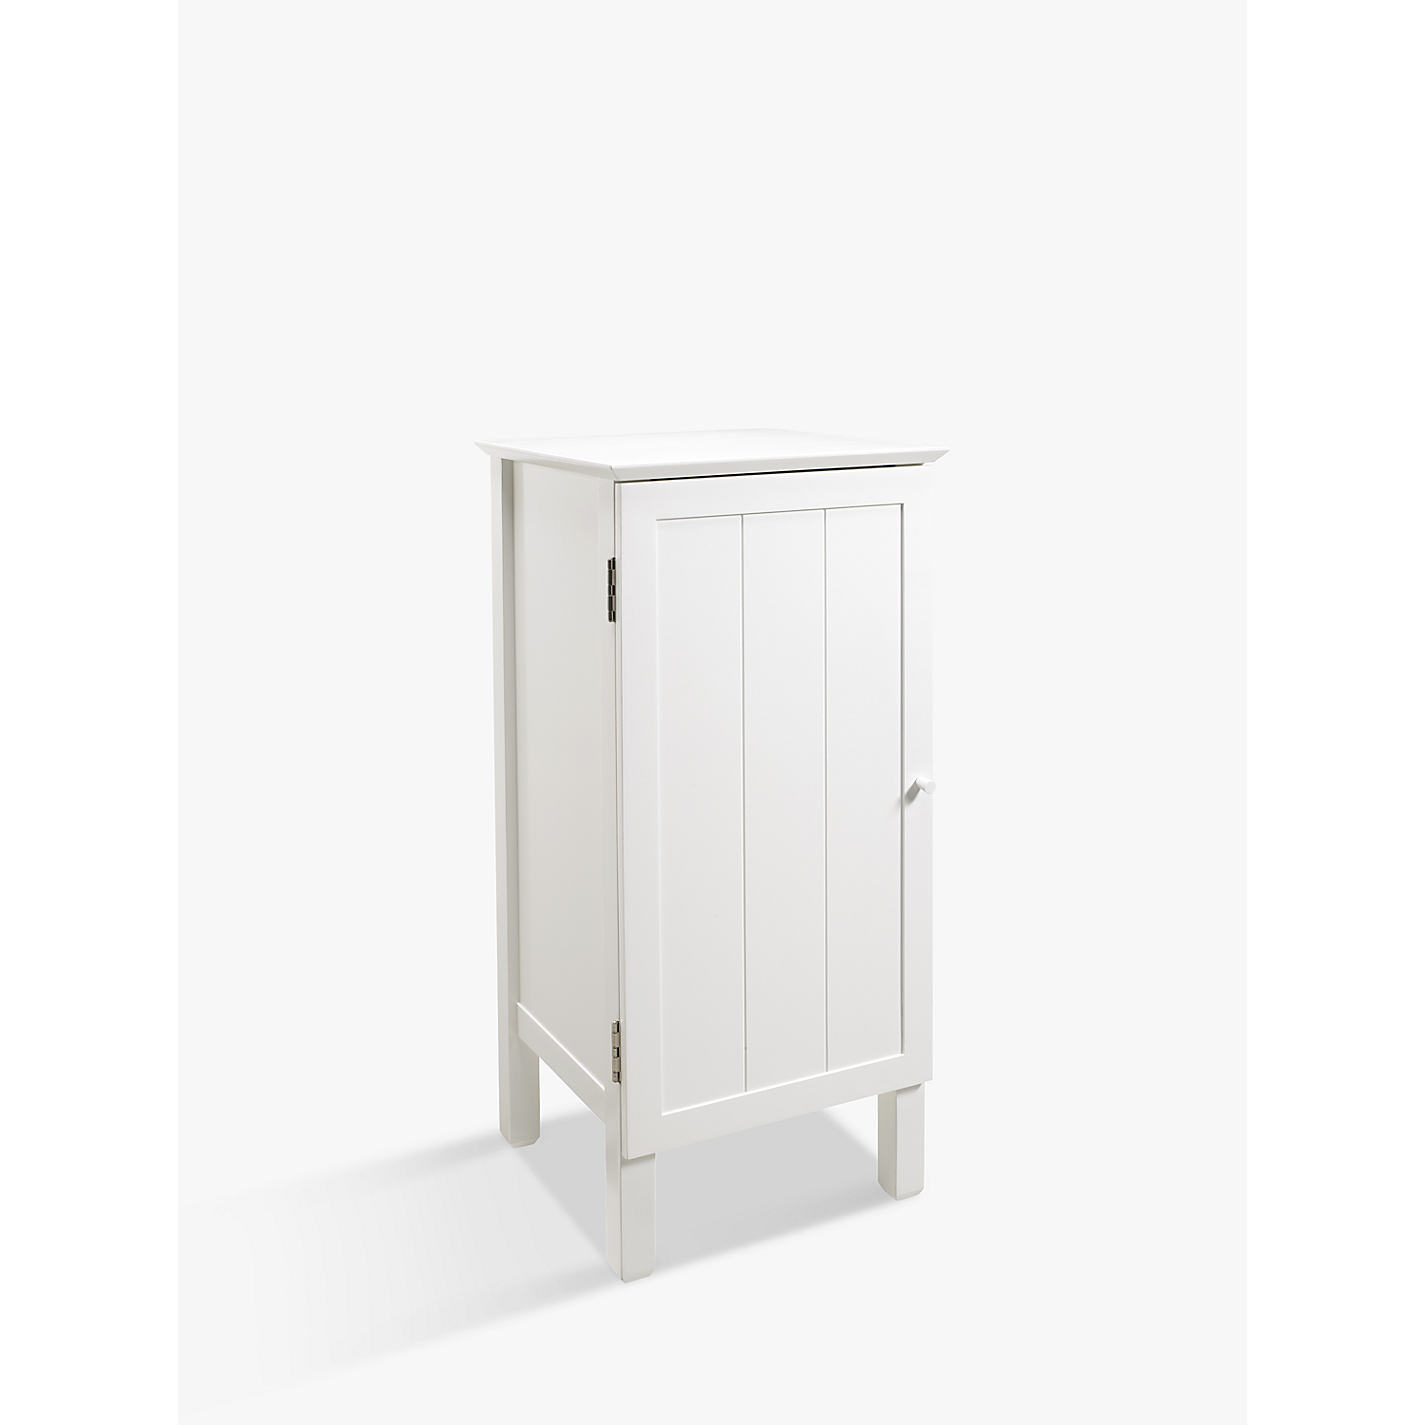 John Lewis Bathroom Cabinets Free Standing